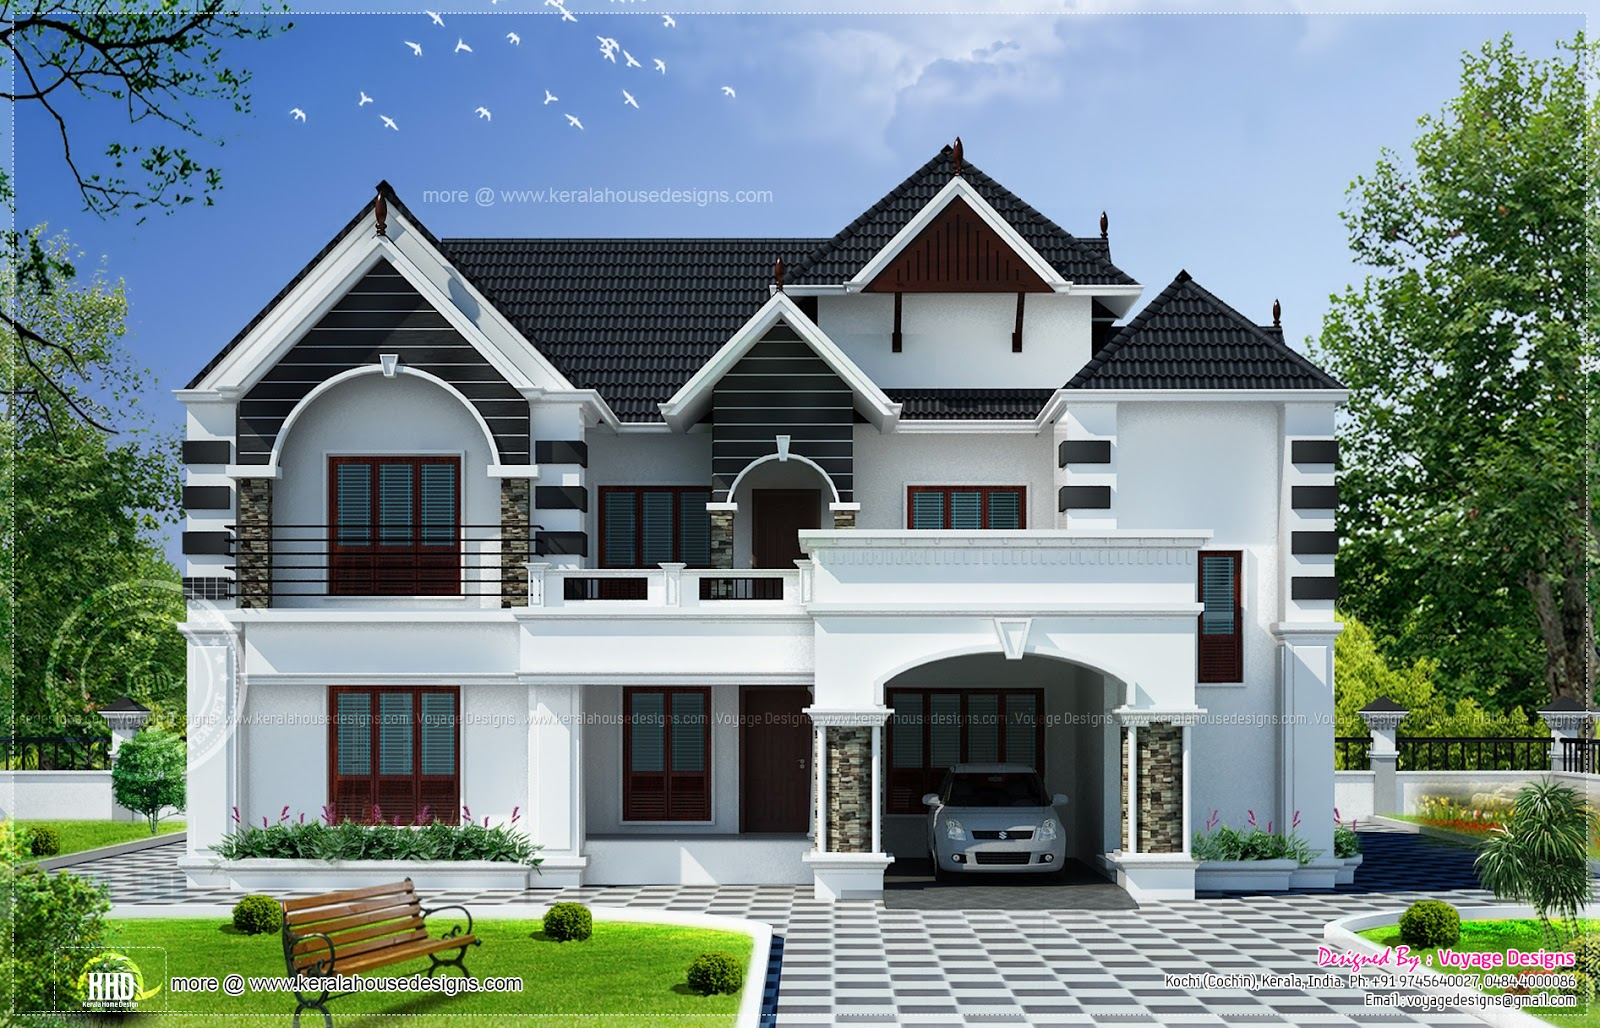 4 bedroom colonial style house kerala home design and Colonial style house